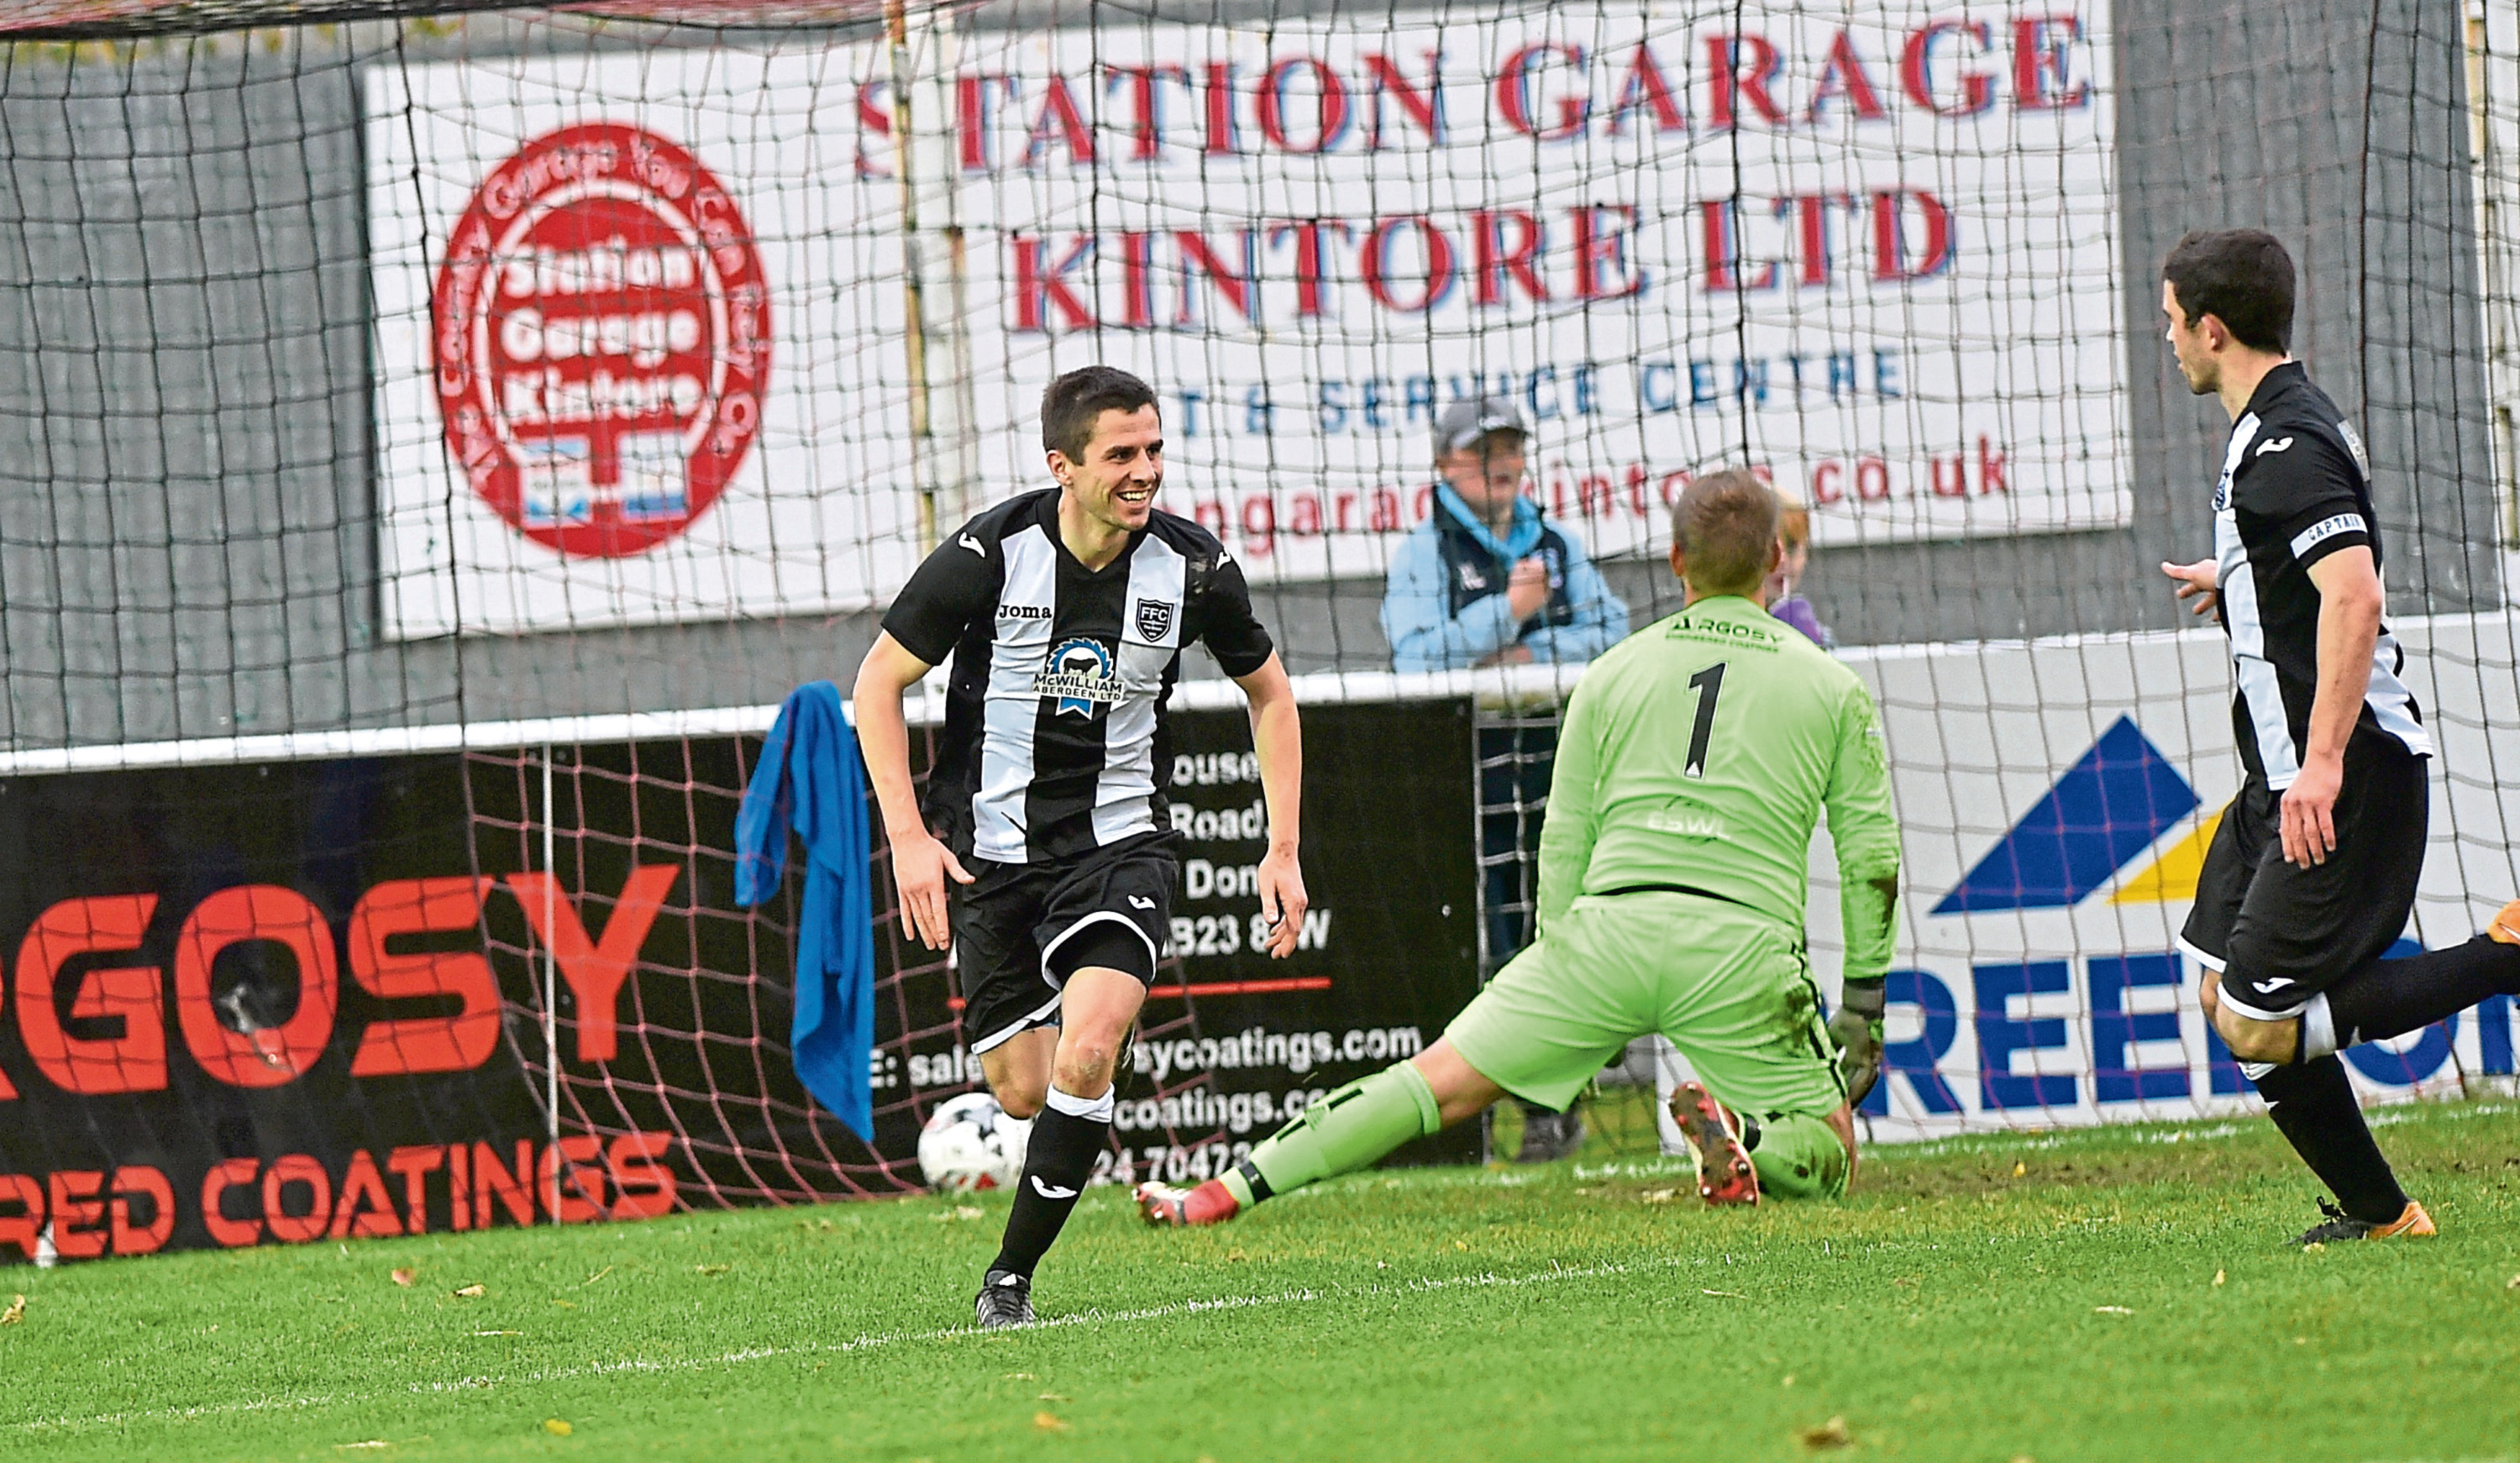 Fraserburgh's Paul Young celebrates his goal. Picture by Colin Rennie